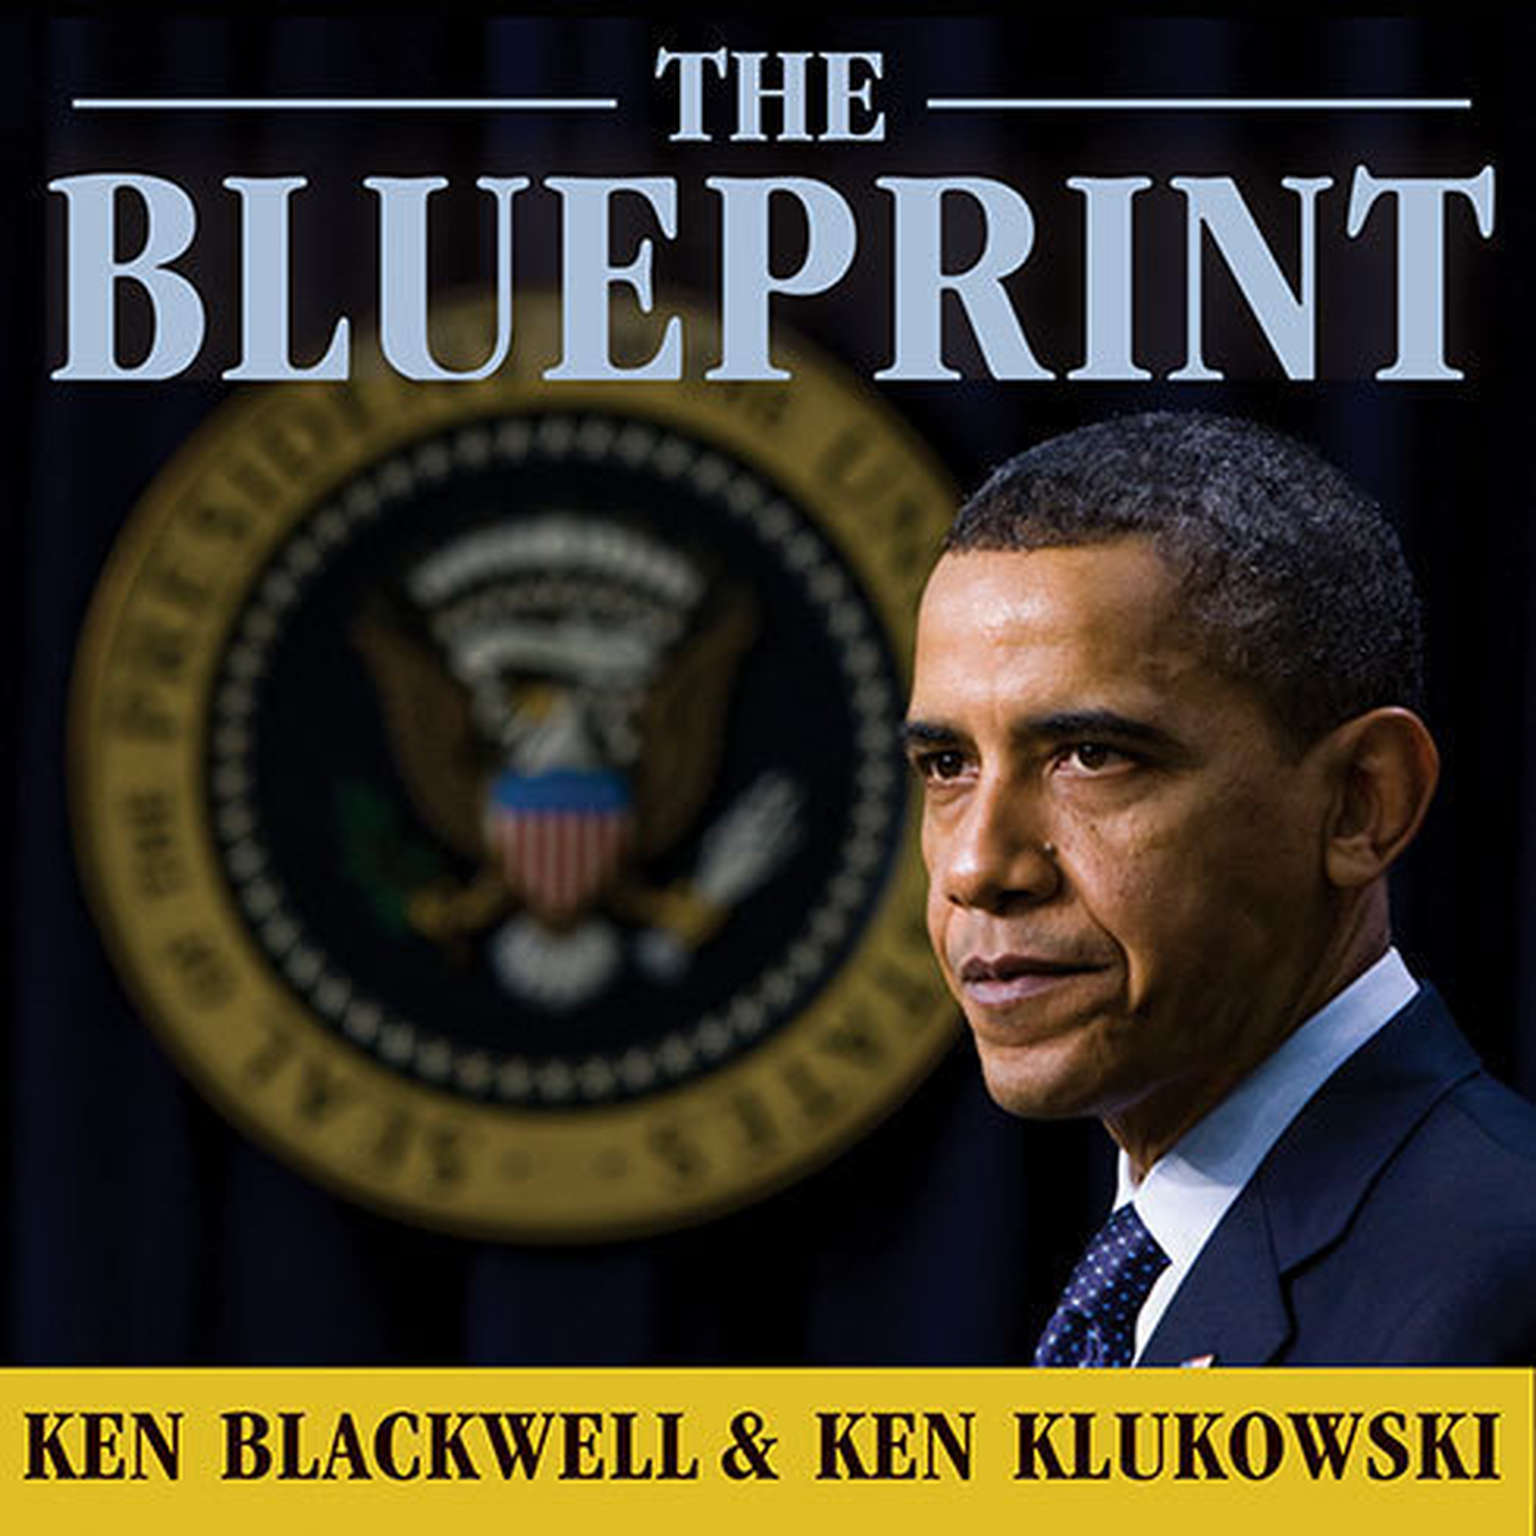 The blueprint audiobook listen instantly the blueprint obamas plan to subvert the constitution and build an imperial presidency audiobook malvernweather